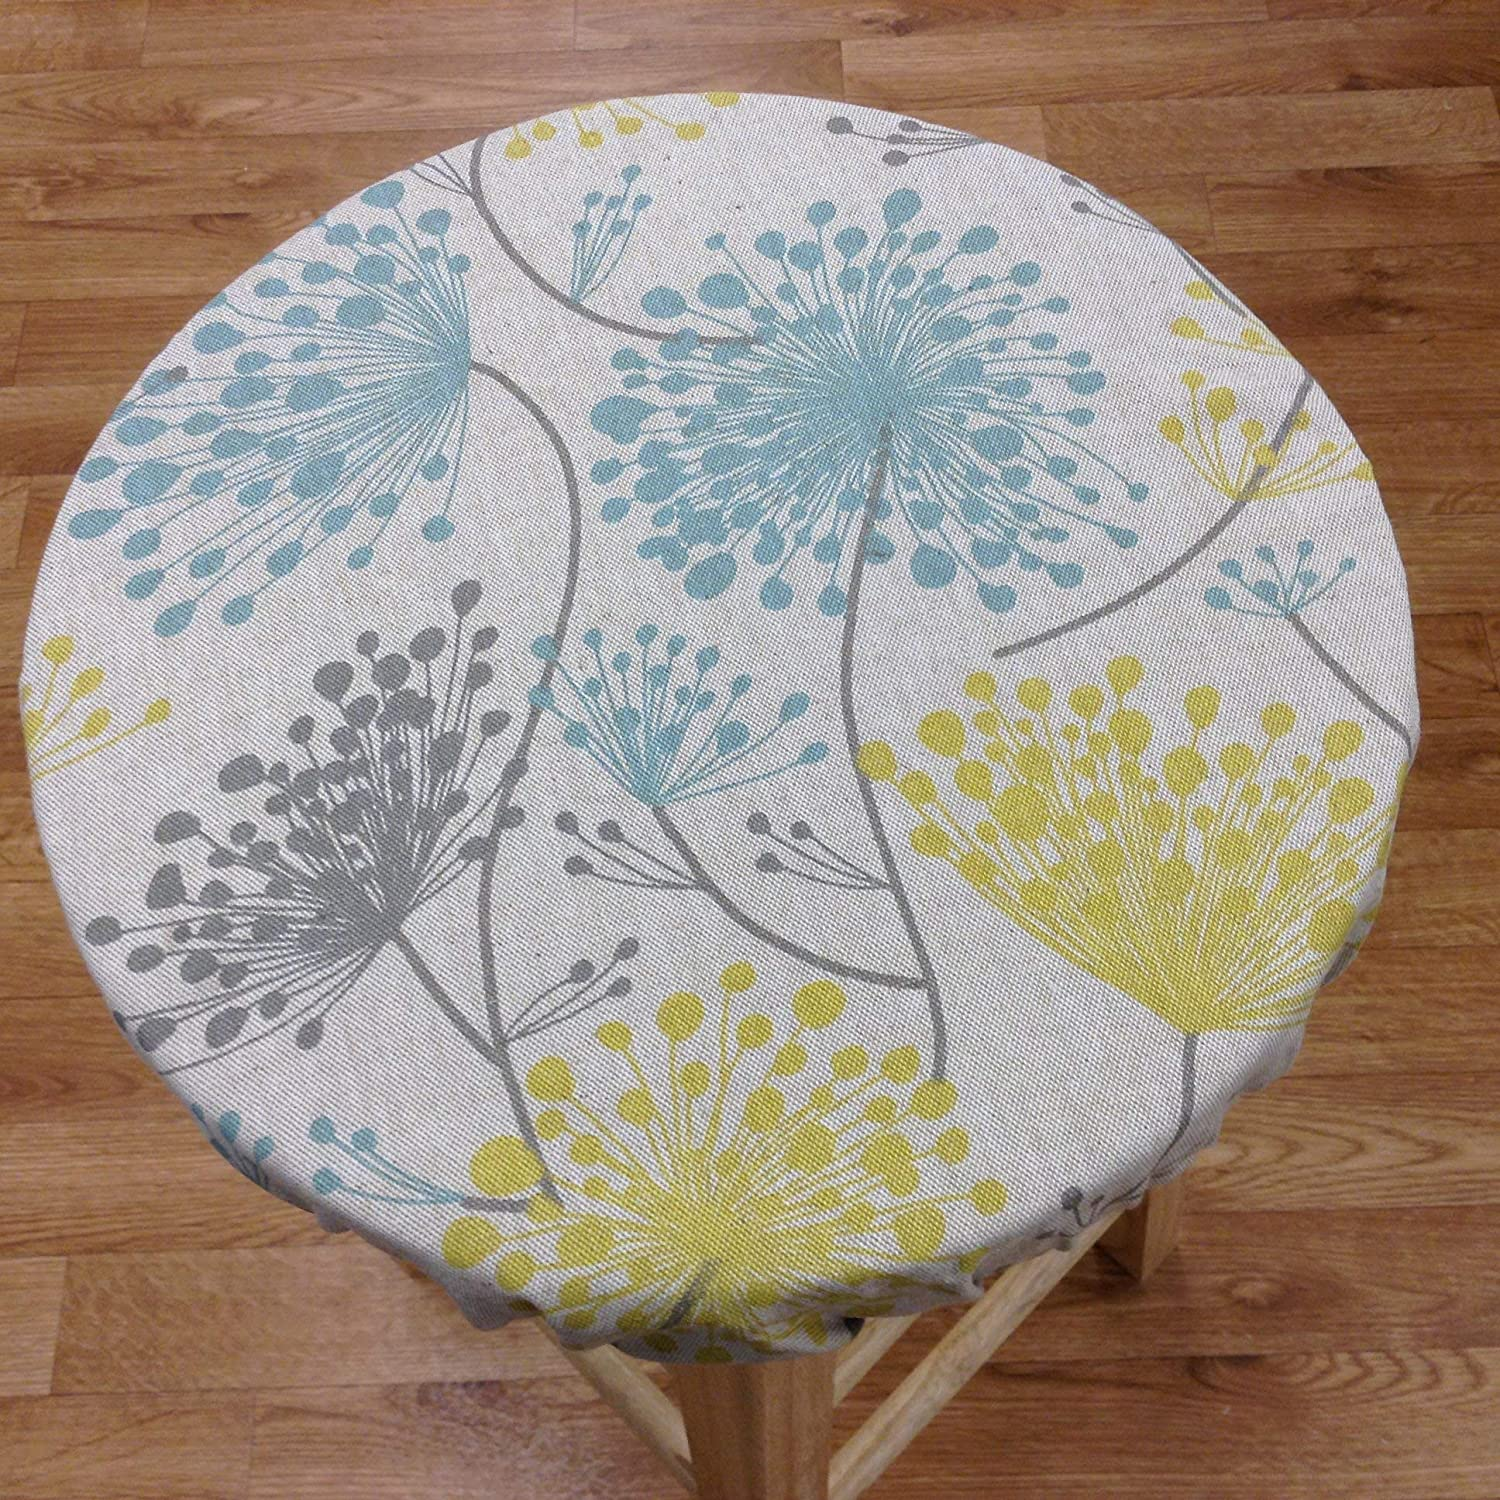 Amazing Round Bar Stool Cover For Seats 12 20 Diameter Rustic Irish Daisy Floral Prints Natural Linen With Light Blue Grey And Yellow Colors Stool Ncnpc Chair Design For Home Ncnpcorg